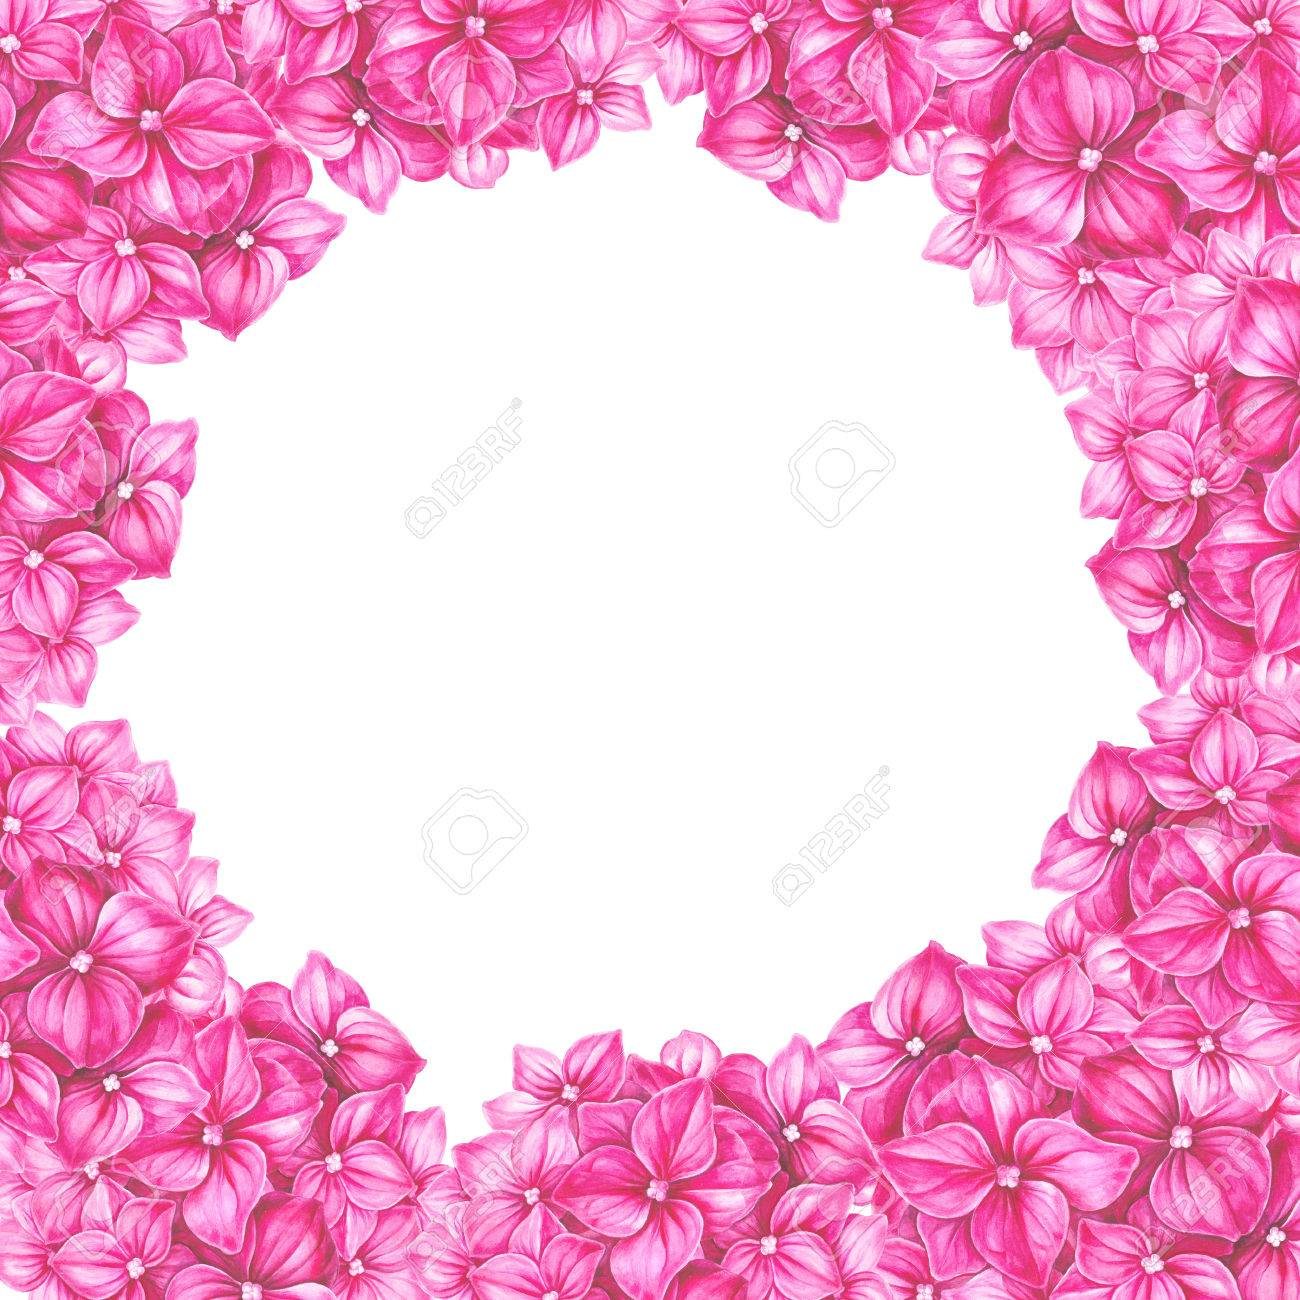 Blooming Hydrangea Flower Watercolor Illustration. Frame Of Pink ...